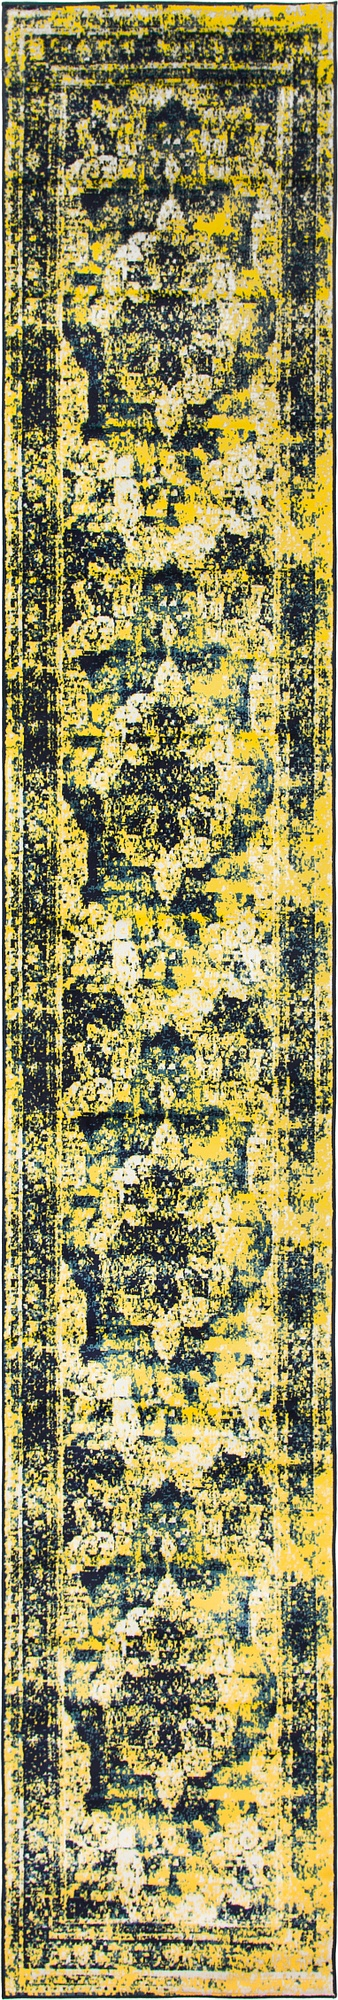 Traditional-Inspired-Persian-Faded-Transitional-Area-Rug-Multi-Color-ALL-SIZES thumbnail 37